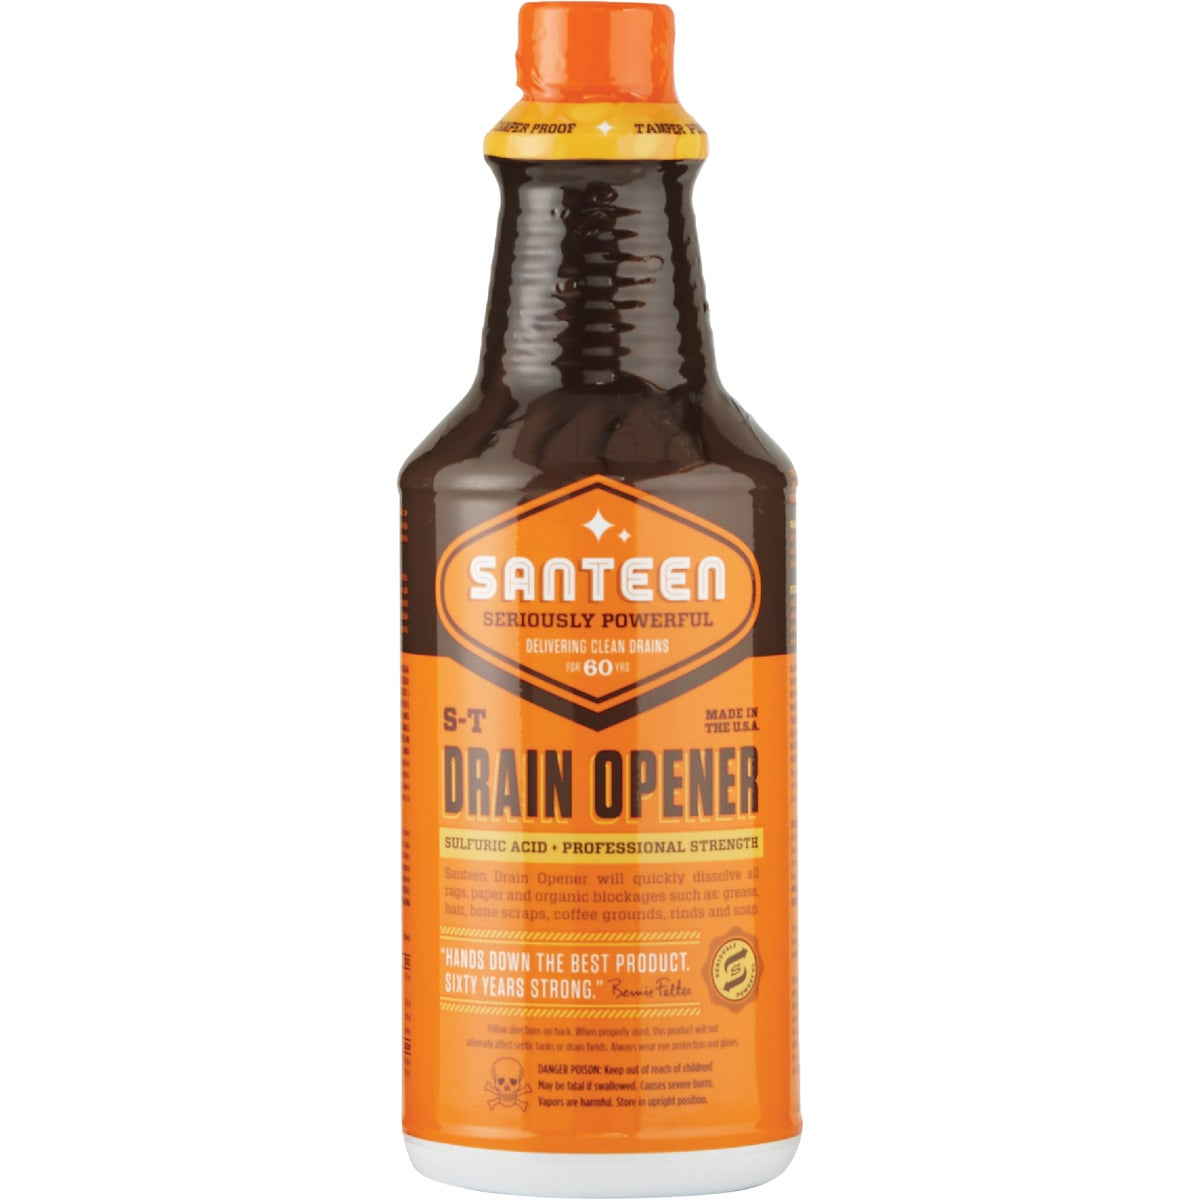 32OZ S-T DRAIN OPENER - 0200 by Santeen Products